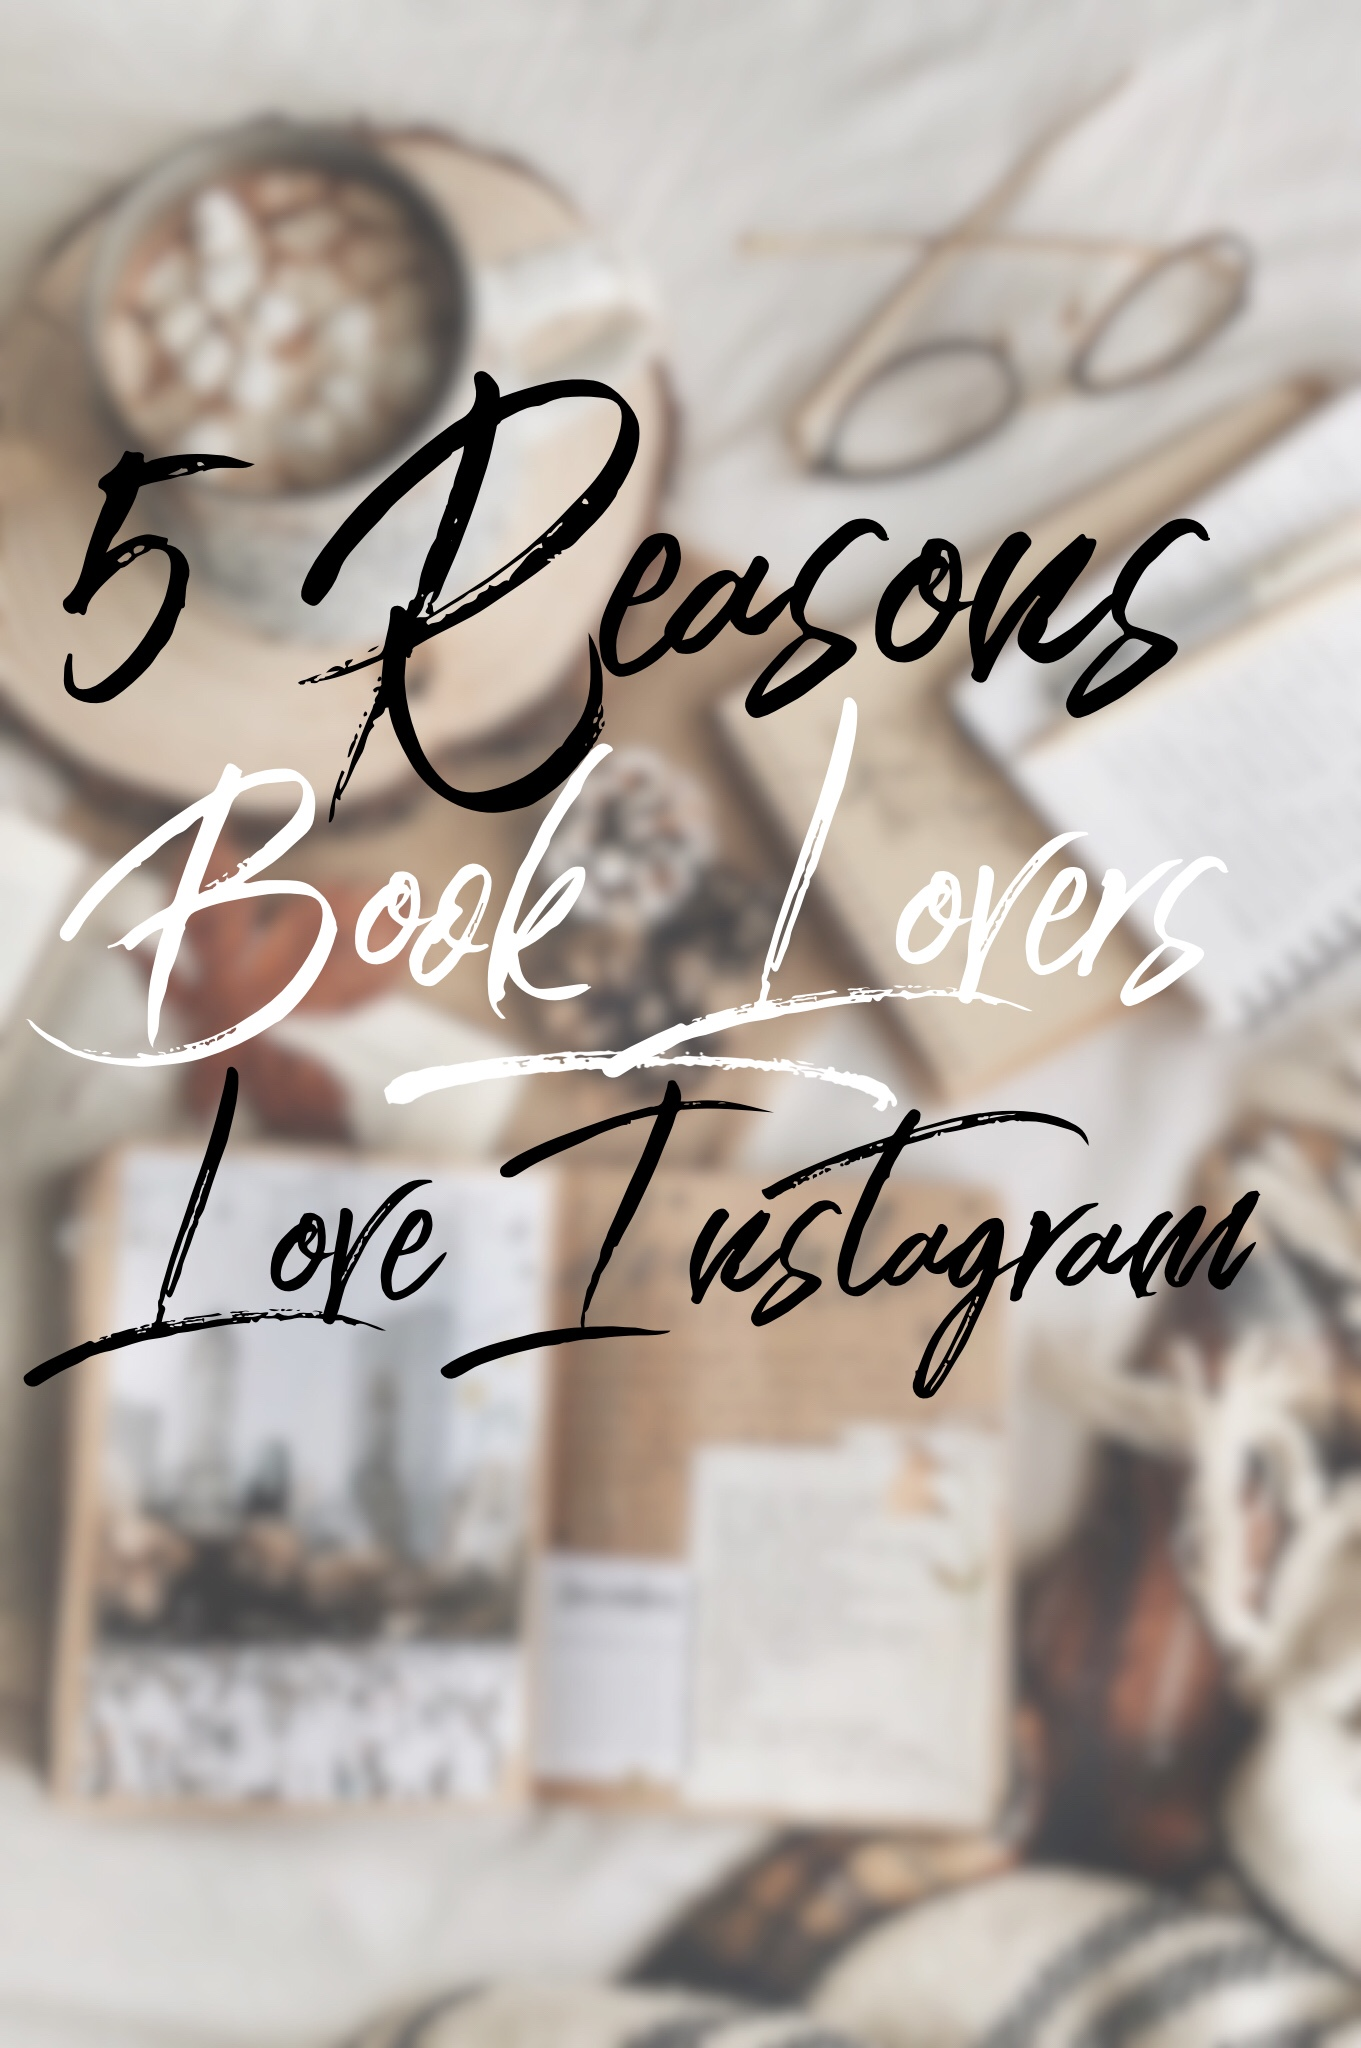 5 Reasons Book Lovers Love Instagram